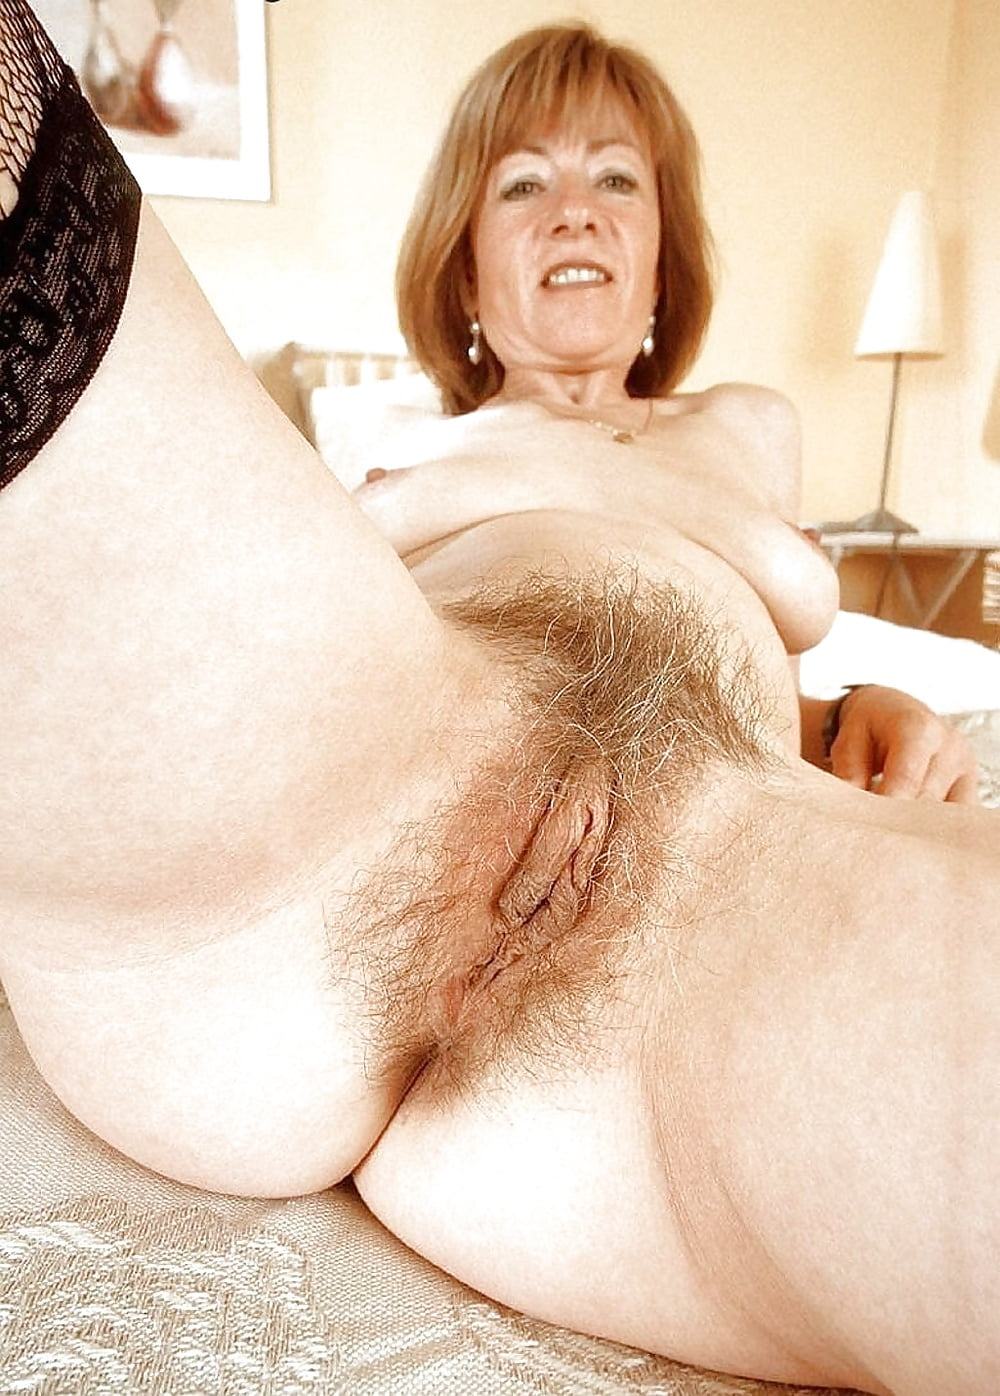 Mature hairy solo pussytures, girls with great butts naked petite